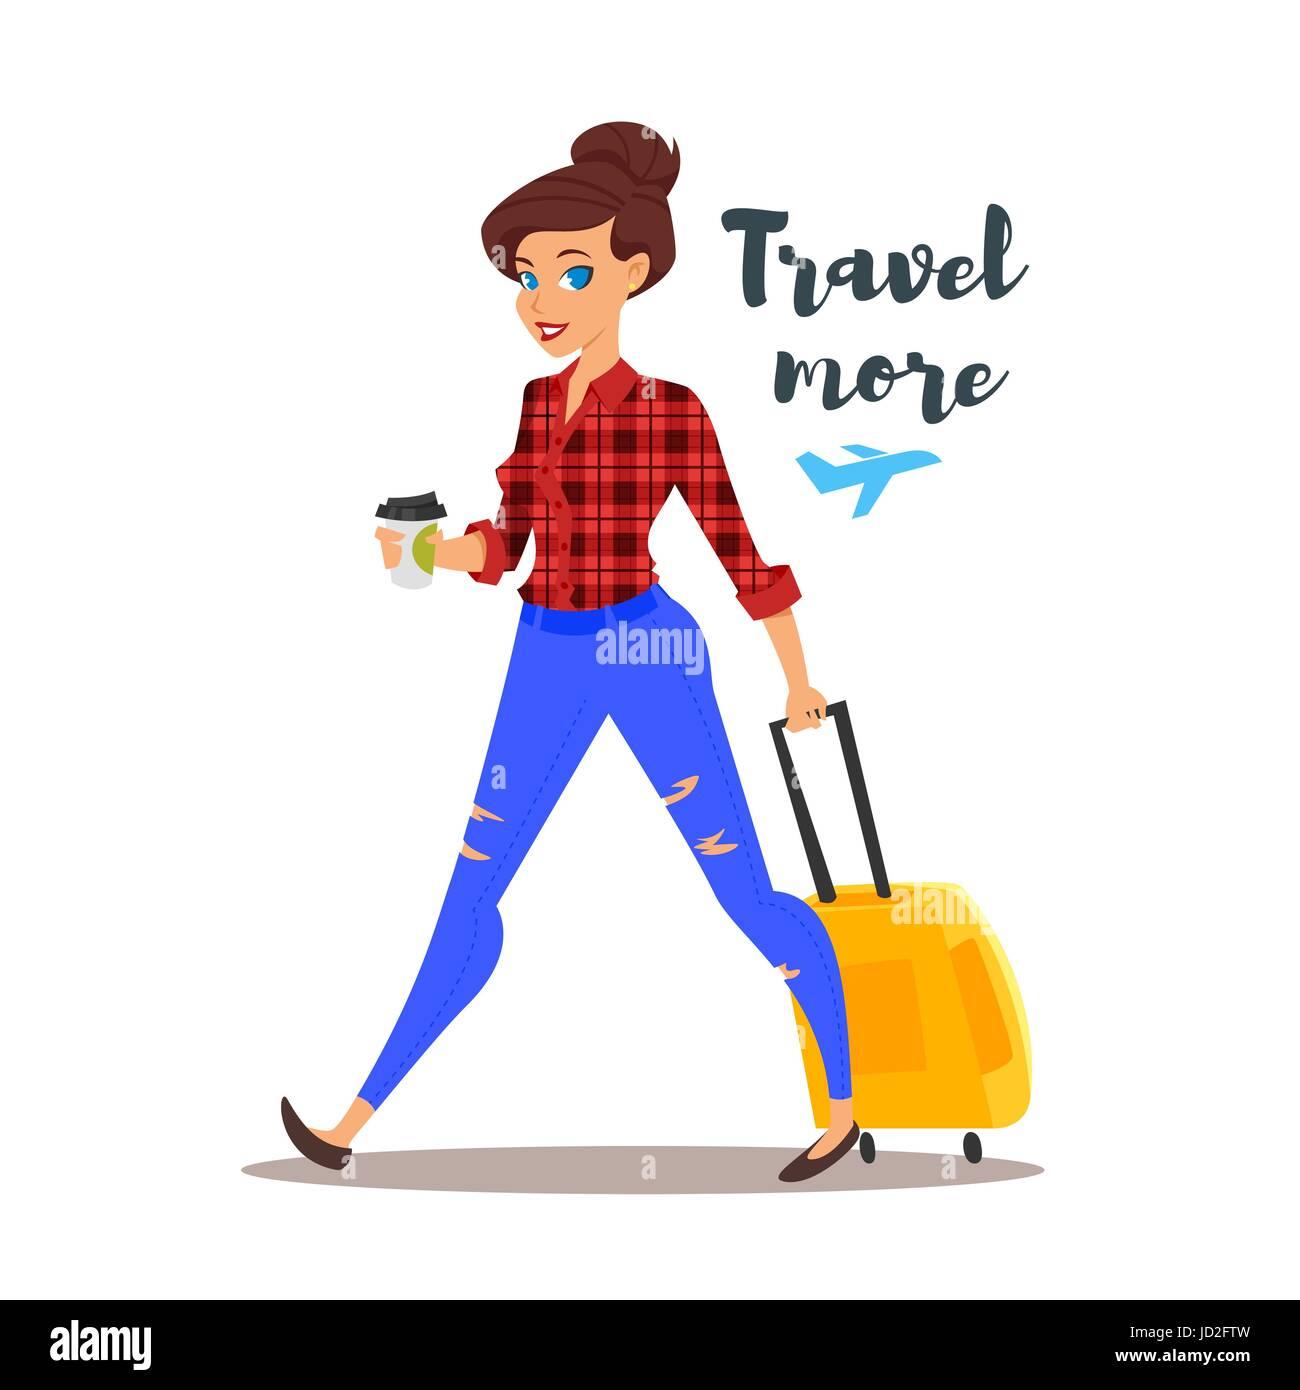 Vector flat style illustration of young pretty woman with a travel case. Travel more motivational poster. Isolated - Stock Vector